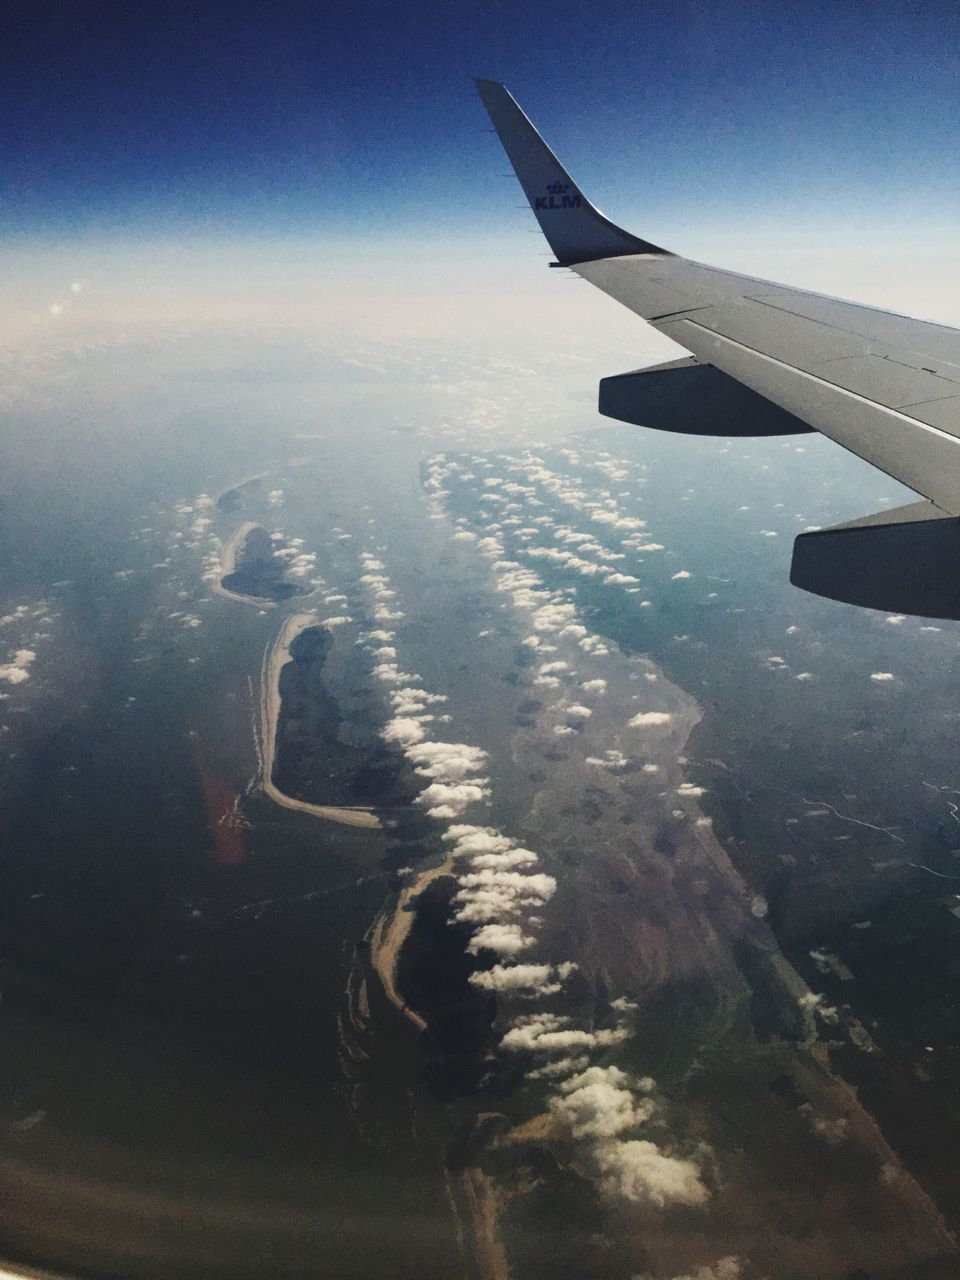 airplane, air vehicle, transportation, mode of transportation, aircraft wing, flying, travel, aerial view, sky, no people, beauty in nature, on the move, nature, journey, motion, mid-air, scenics - nature, landscape, environment, cloud - sky, outdoors, plane